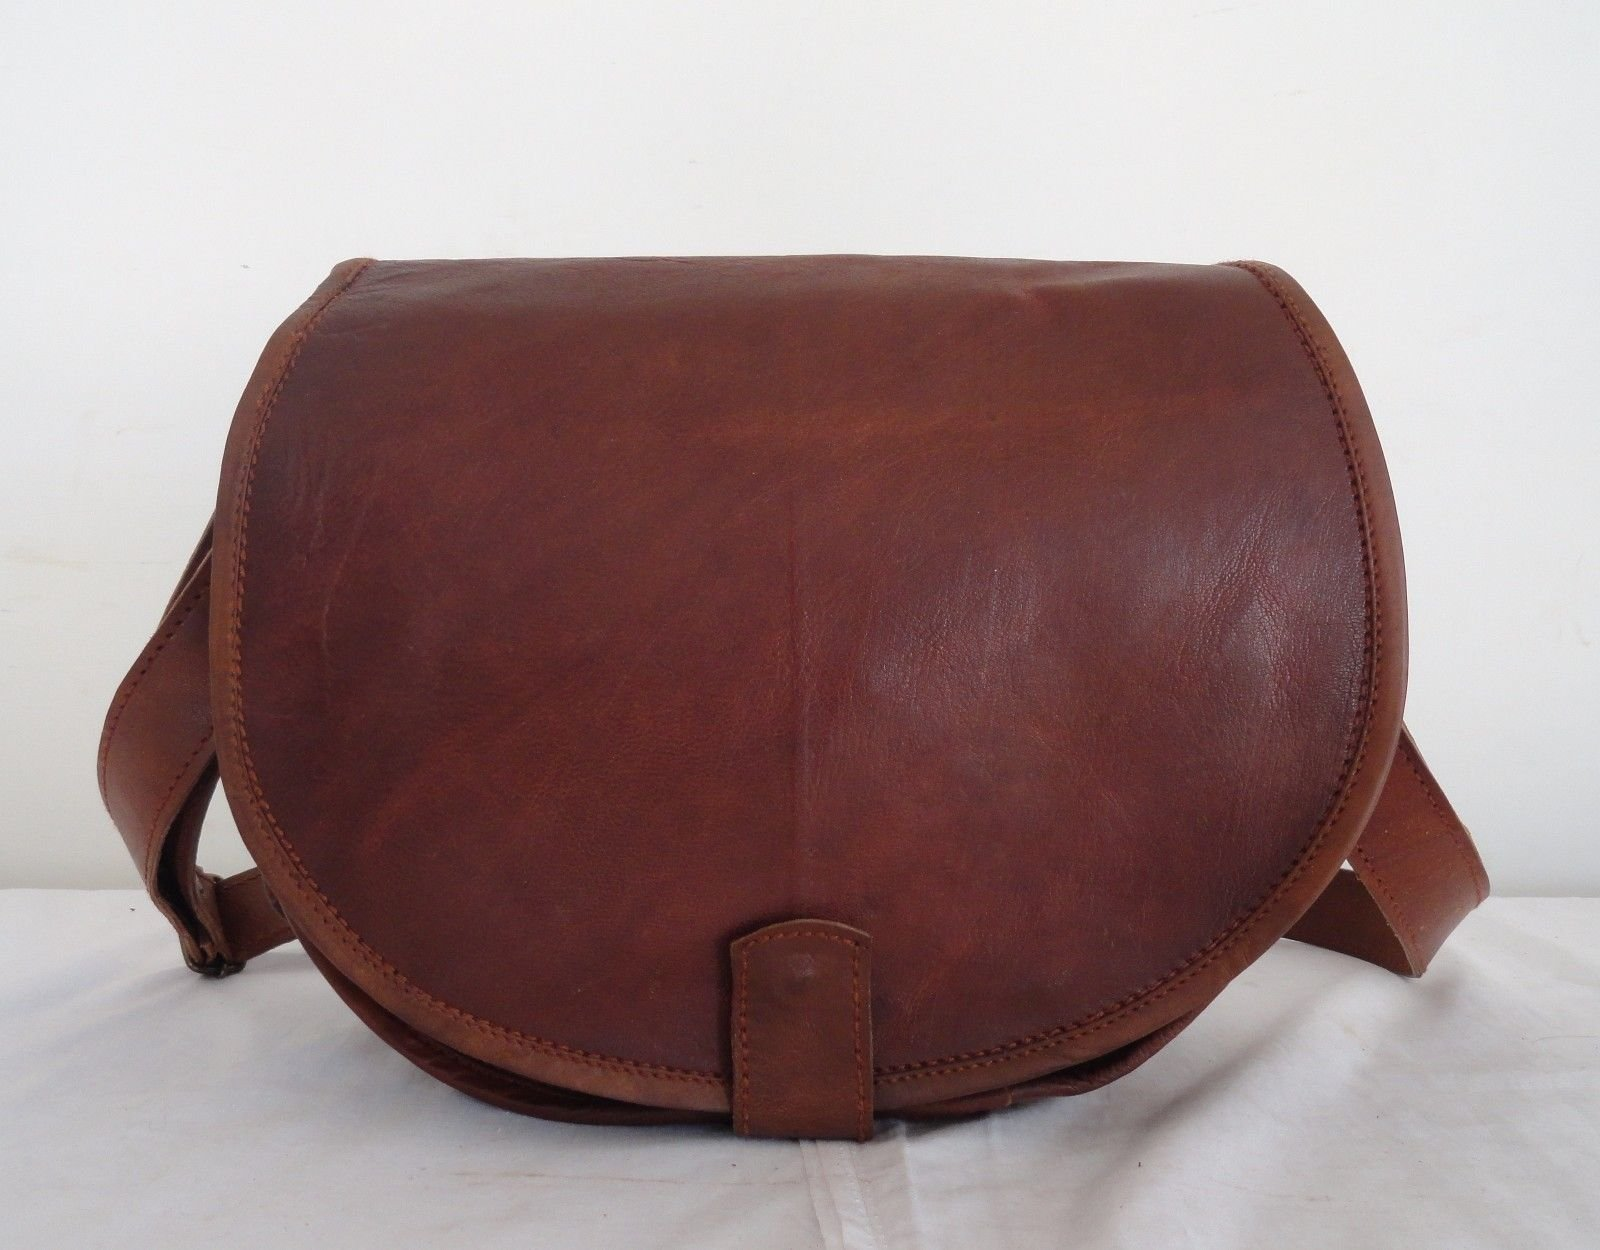 HB Large Real Brown Leather Padded DSLR Camera Padded Bag Briefcase Satchel Messenger Bag